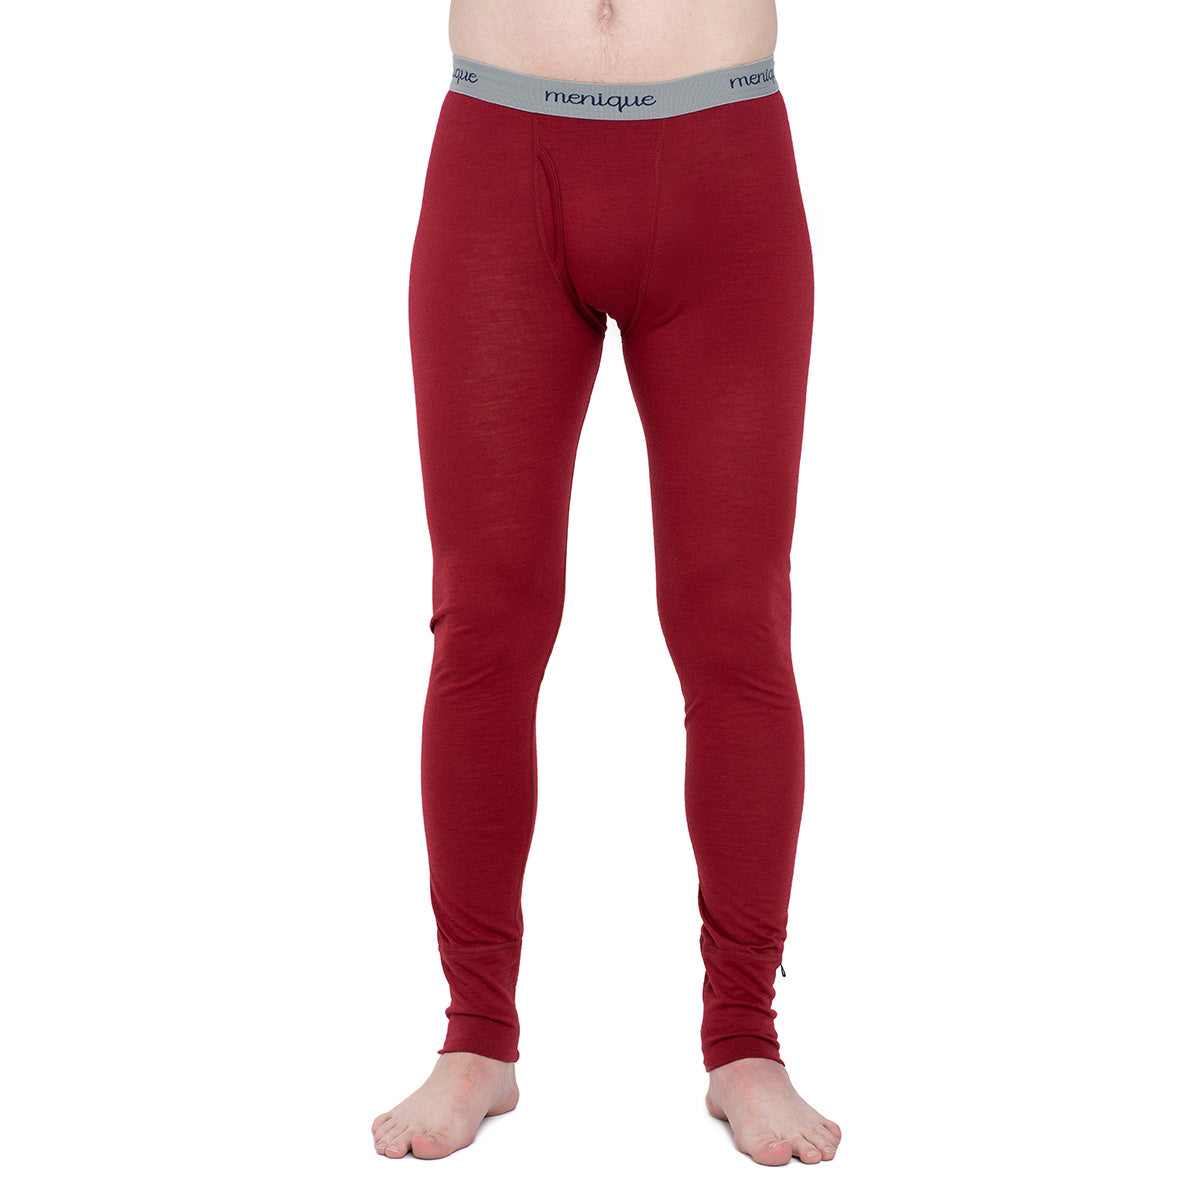 menique Men's Merino 160 Pants RB Royal Cherry Color